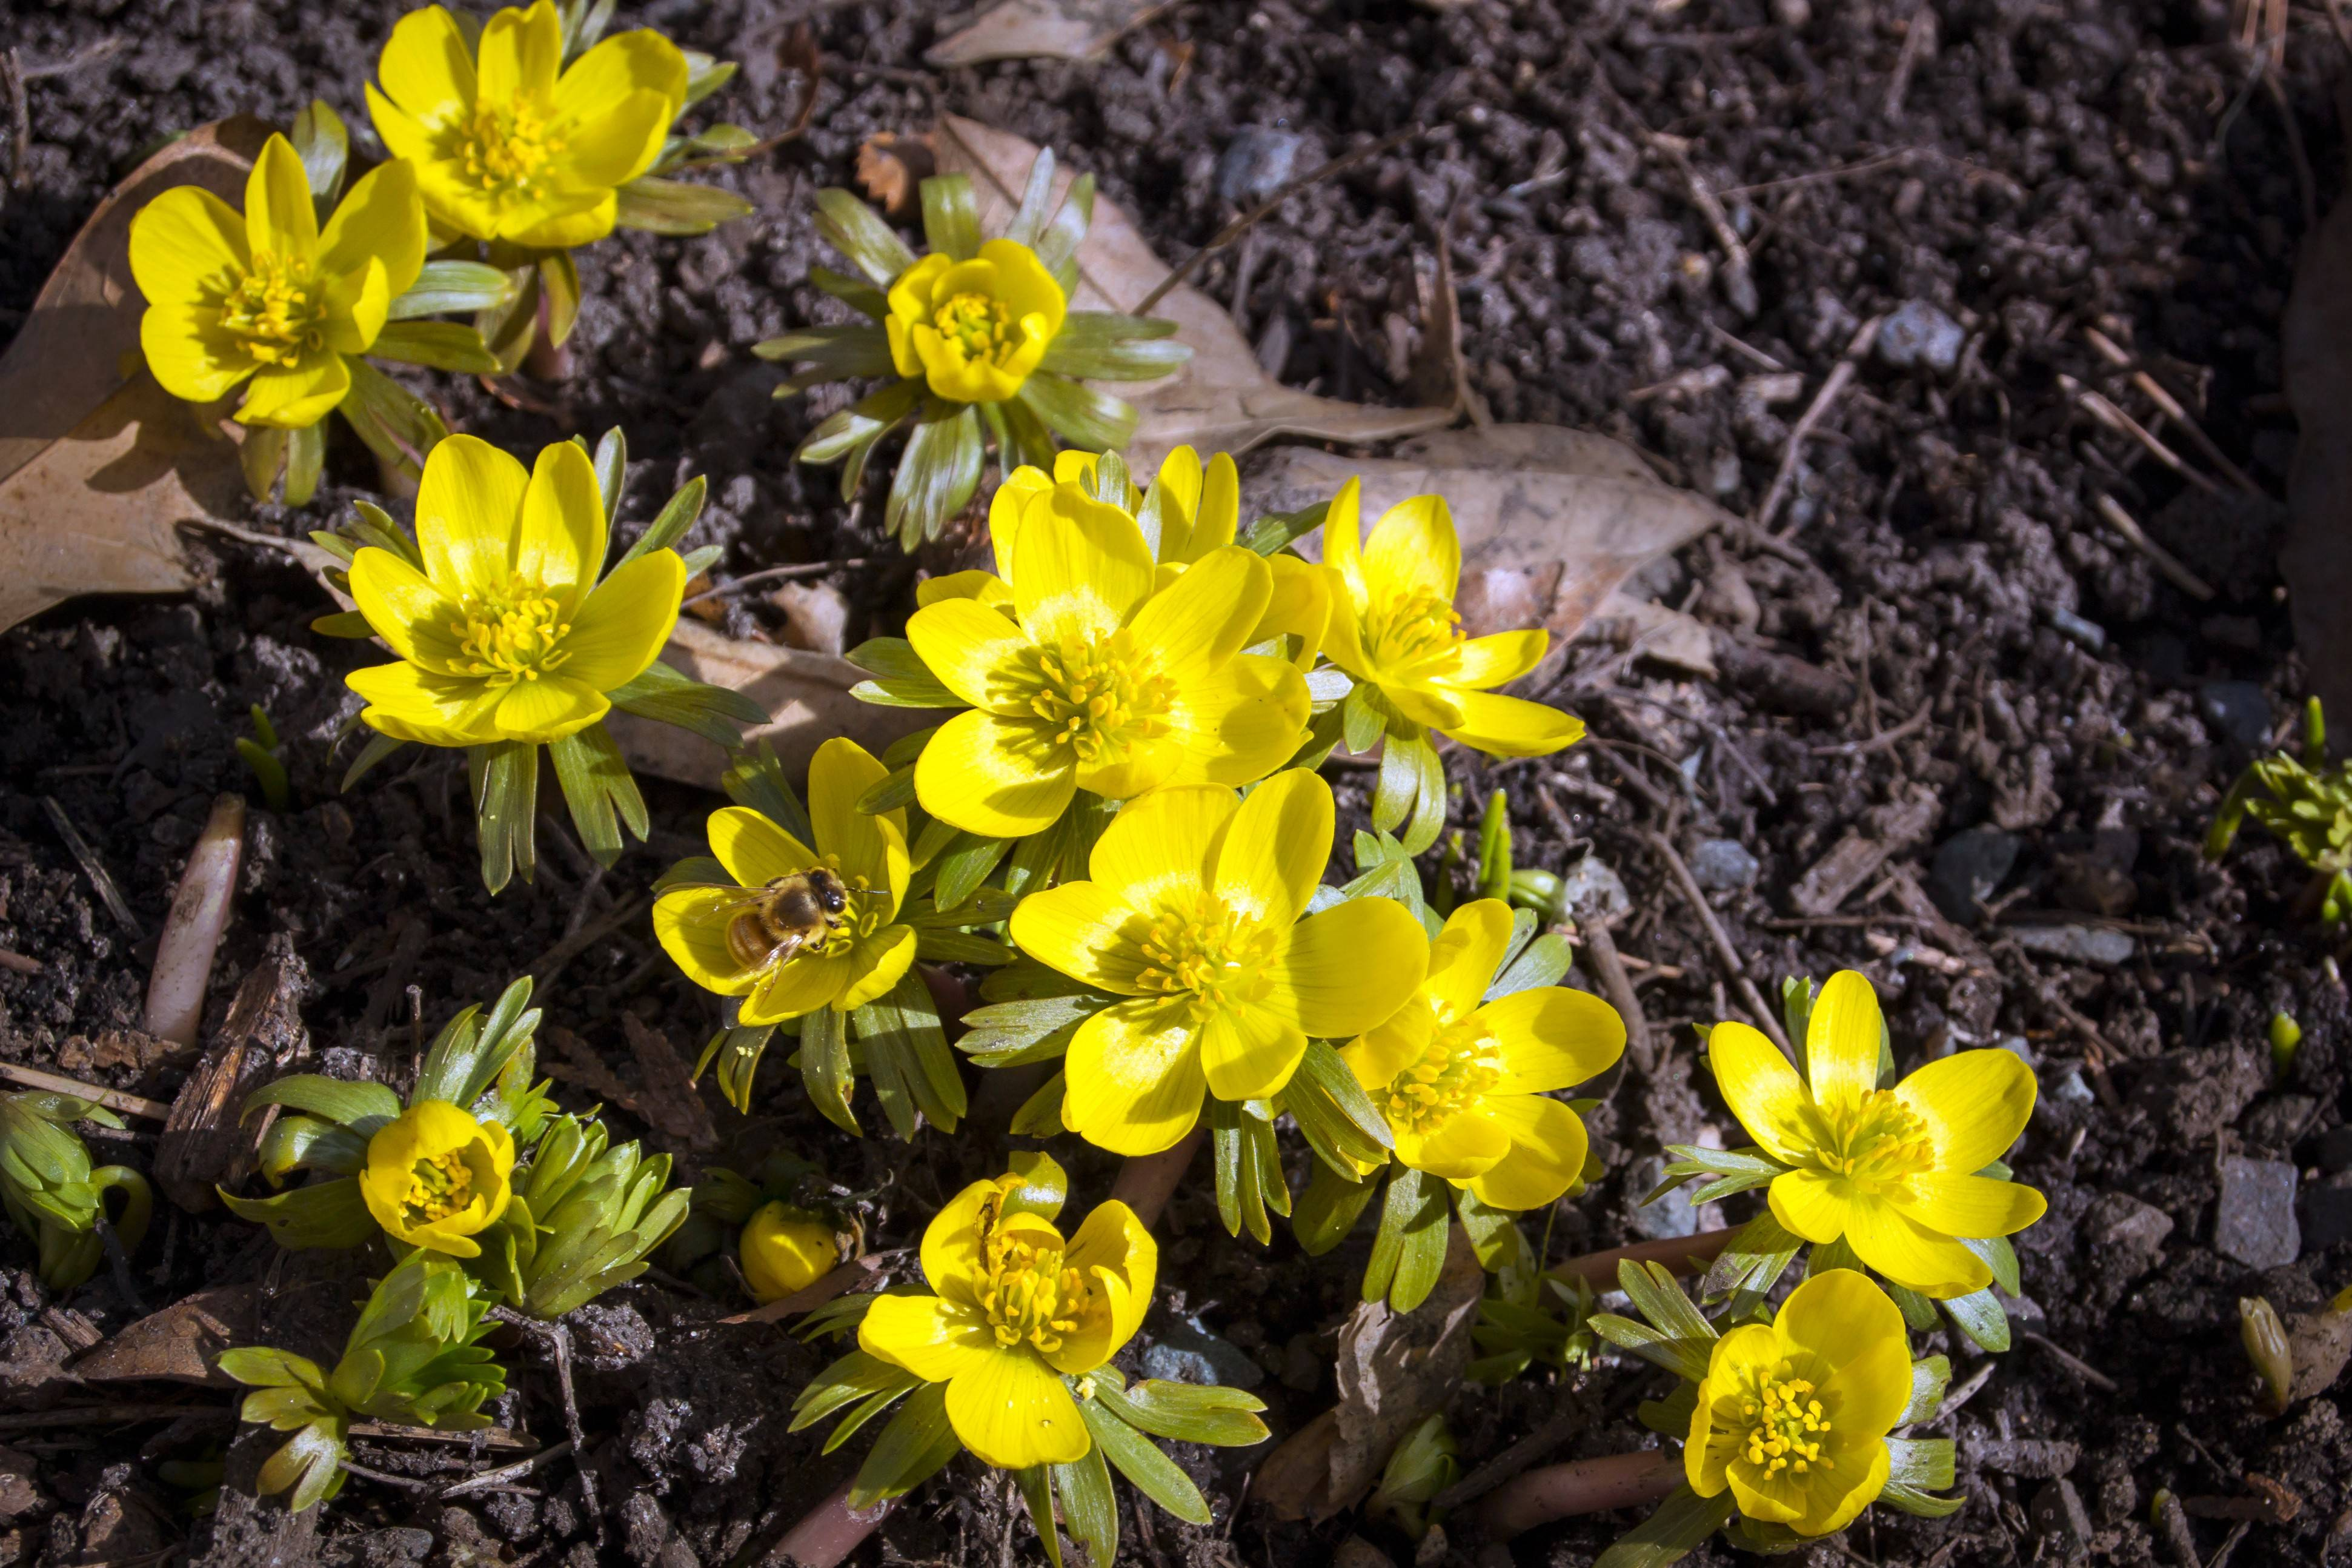 If deer and rabbits are a problem, choose bulbs that are less attractive to them, such as this winter aconite.